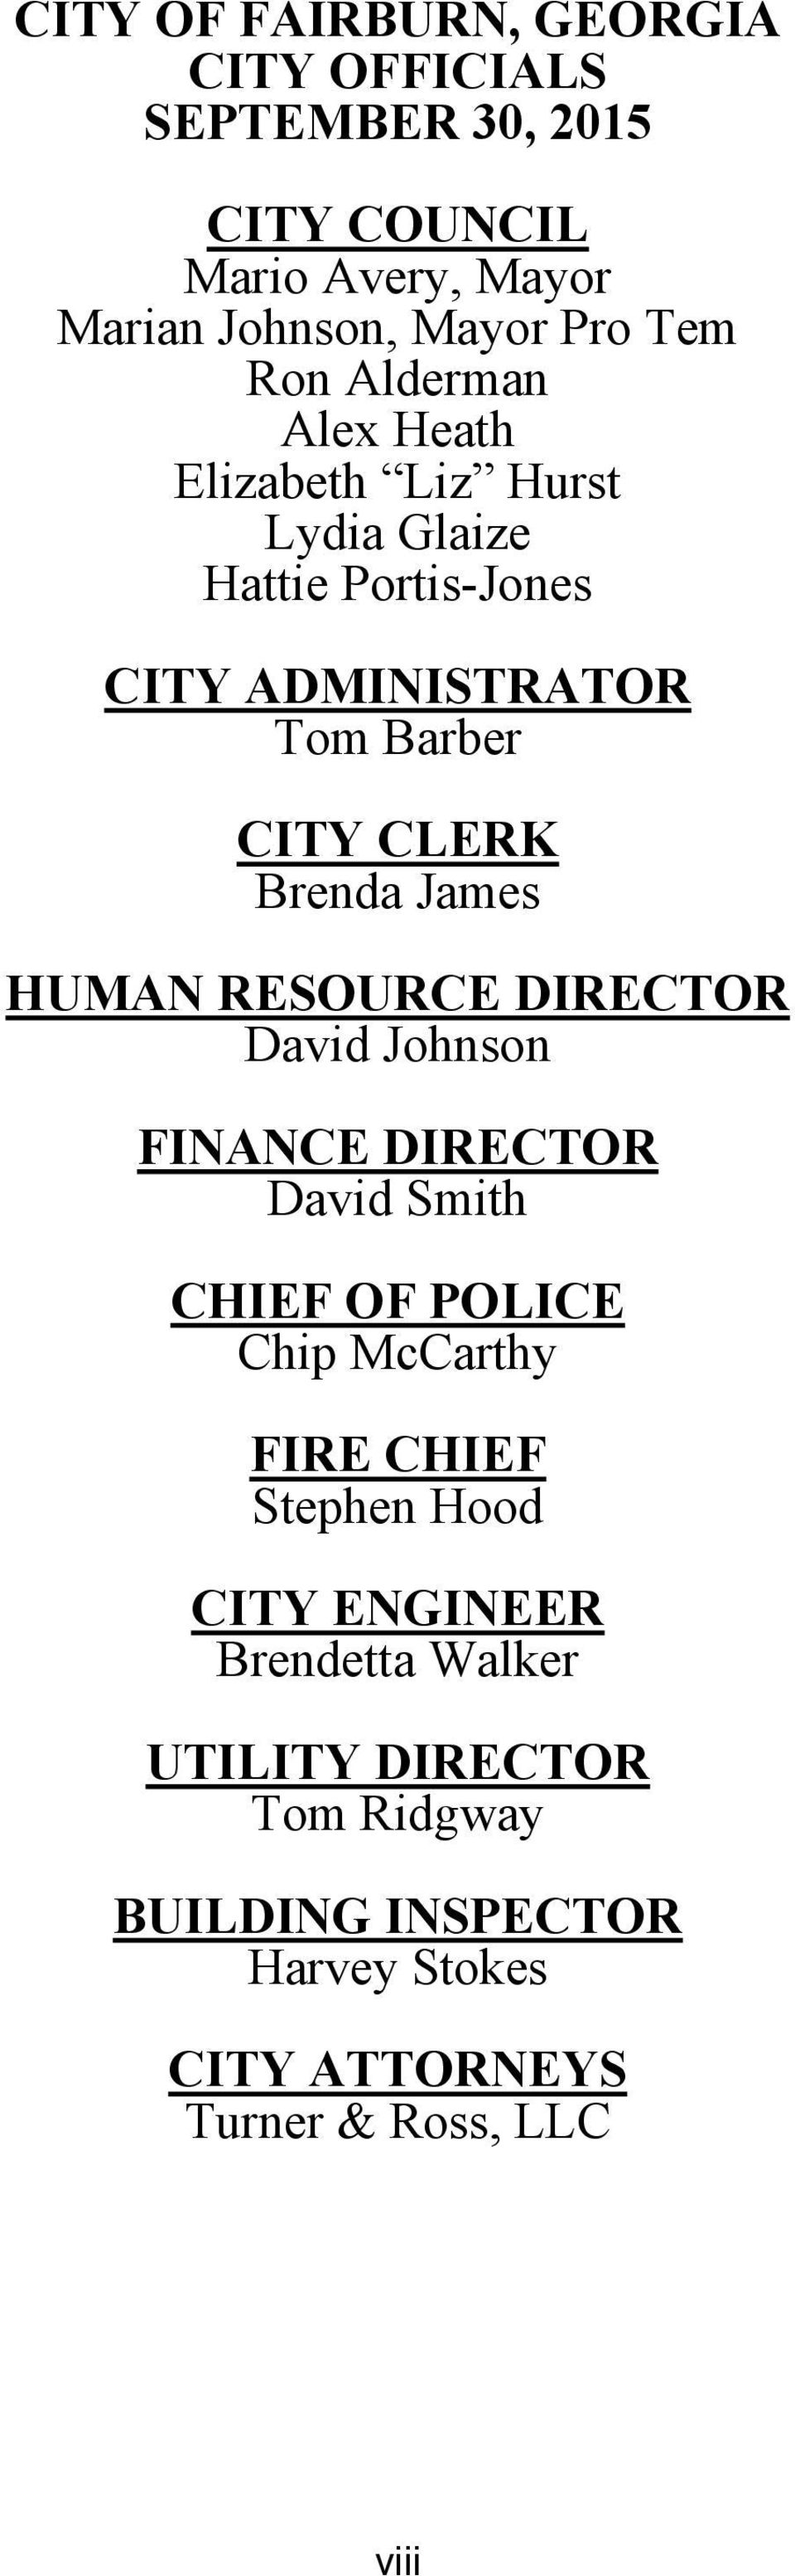 RESOURCE DIRECTOR David Johnson FINANCE DIRECTOR David Smith CHIEF OF POLICE Chip McCarthy FIRE CHIEF Stephen Hood CITY